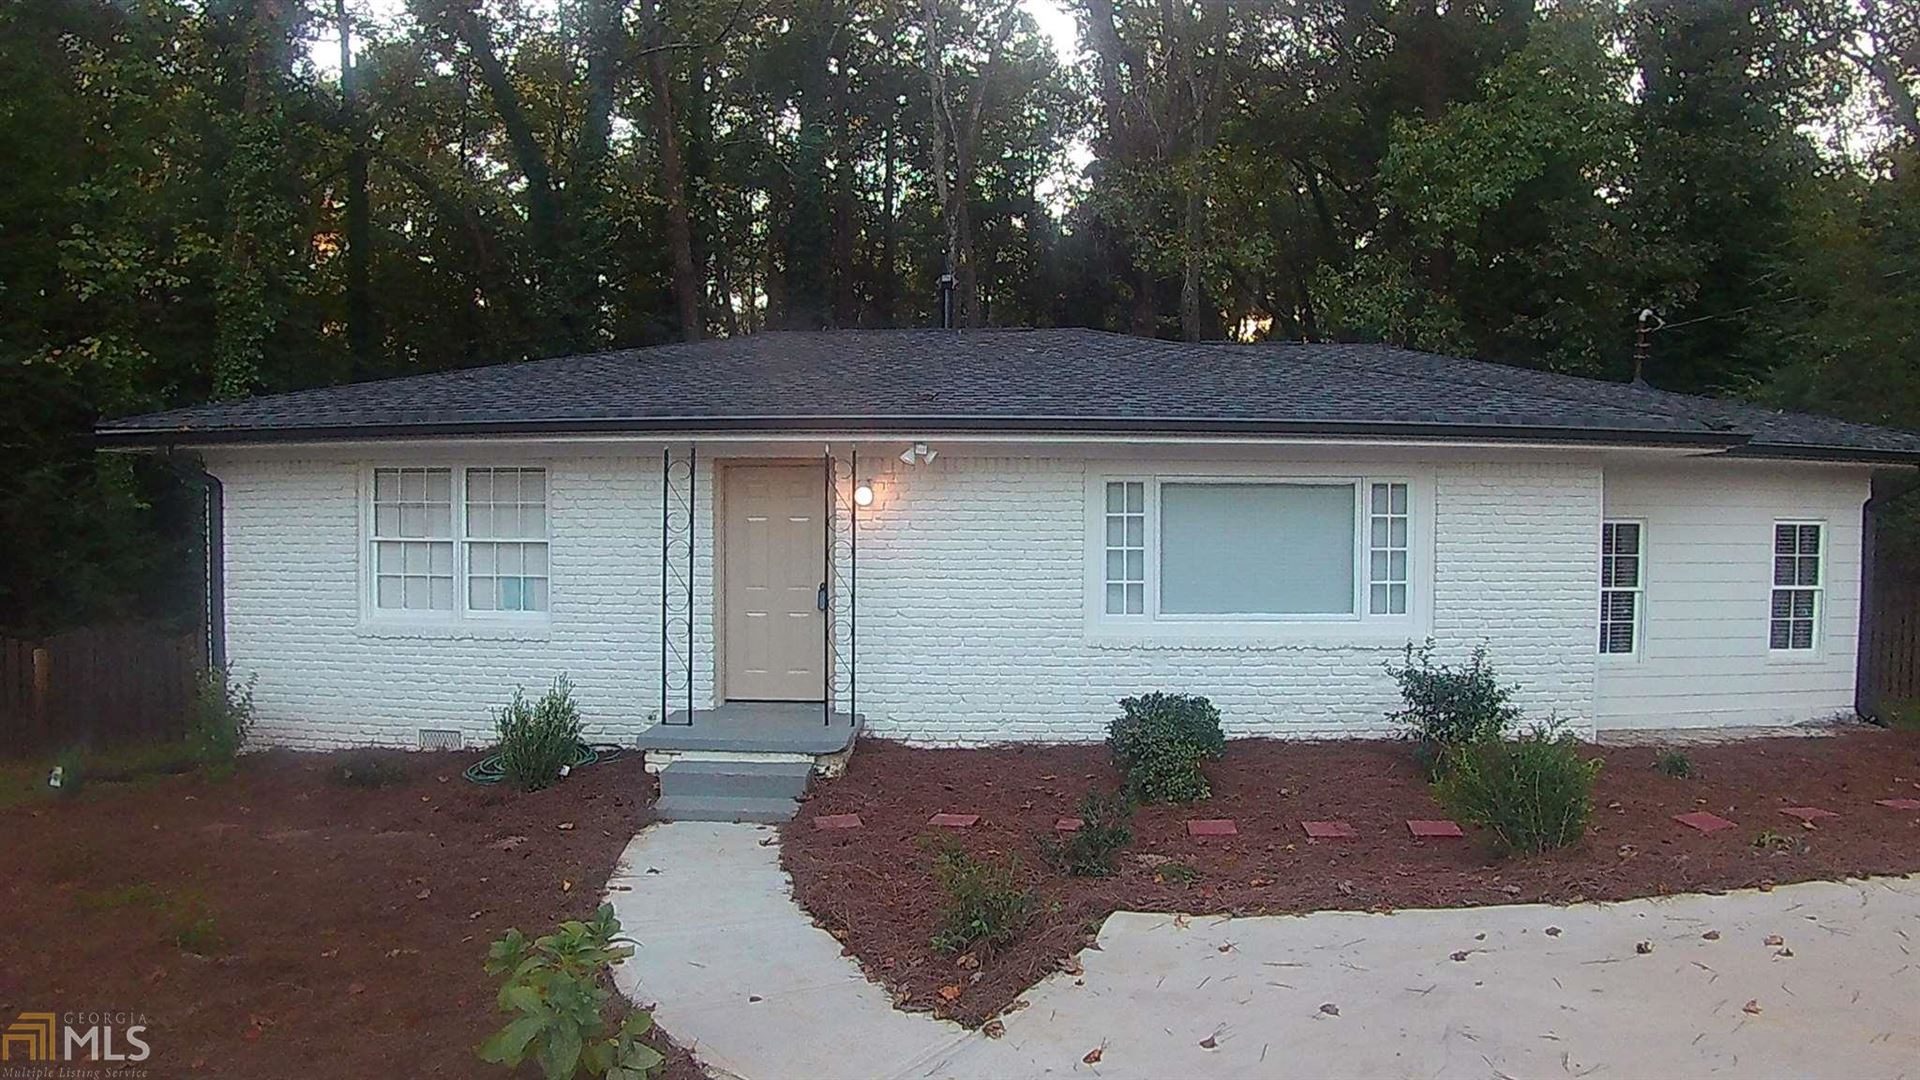 4728 Campbellton, Atlanta, GA 30331 - MLS#: 8874884